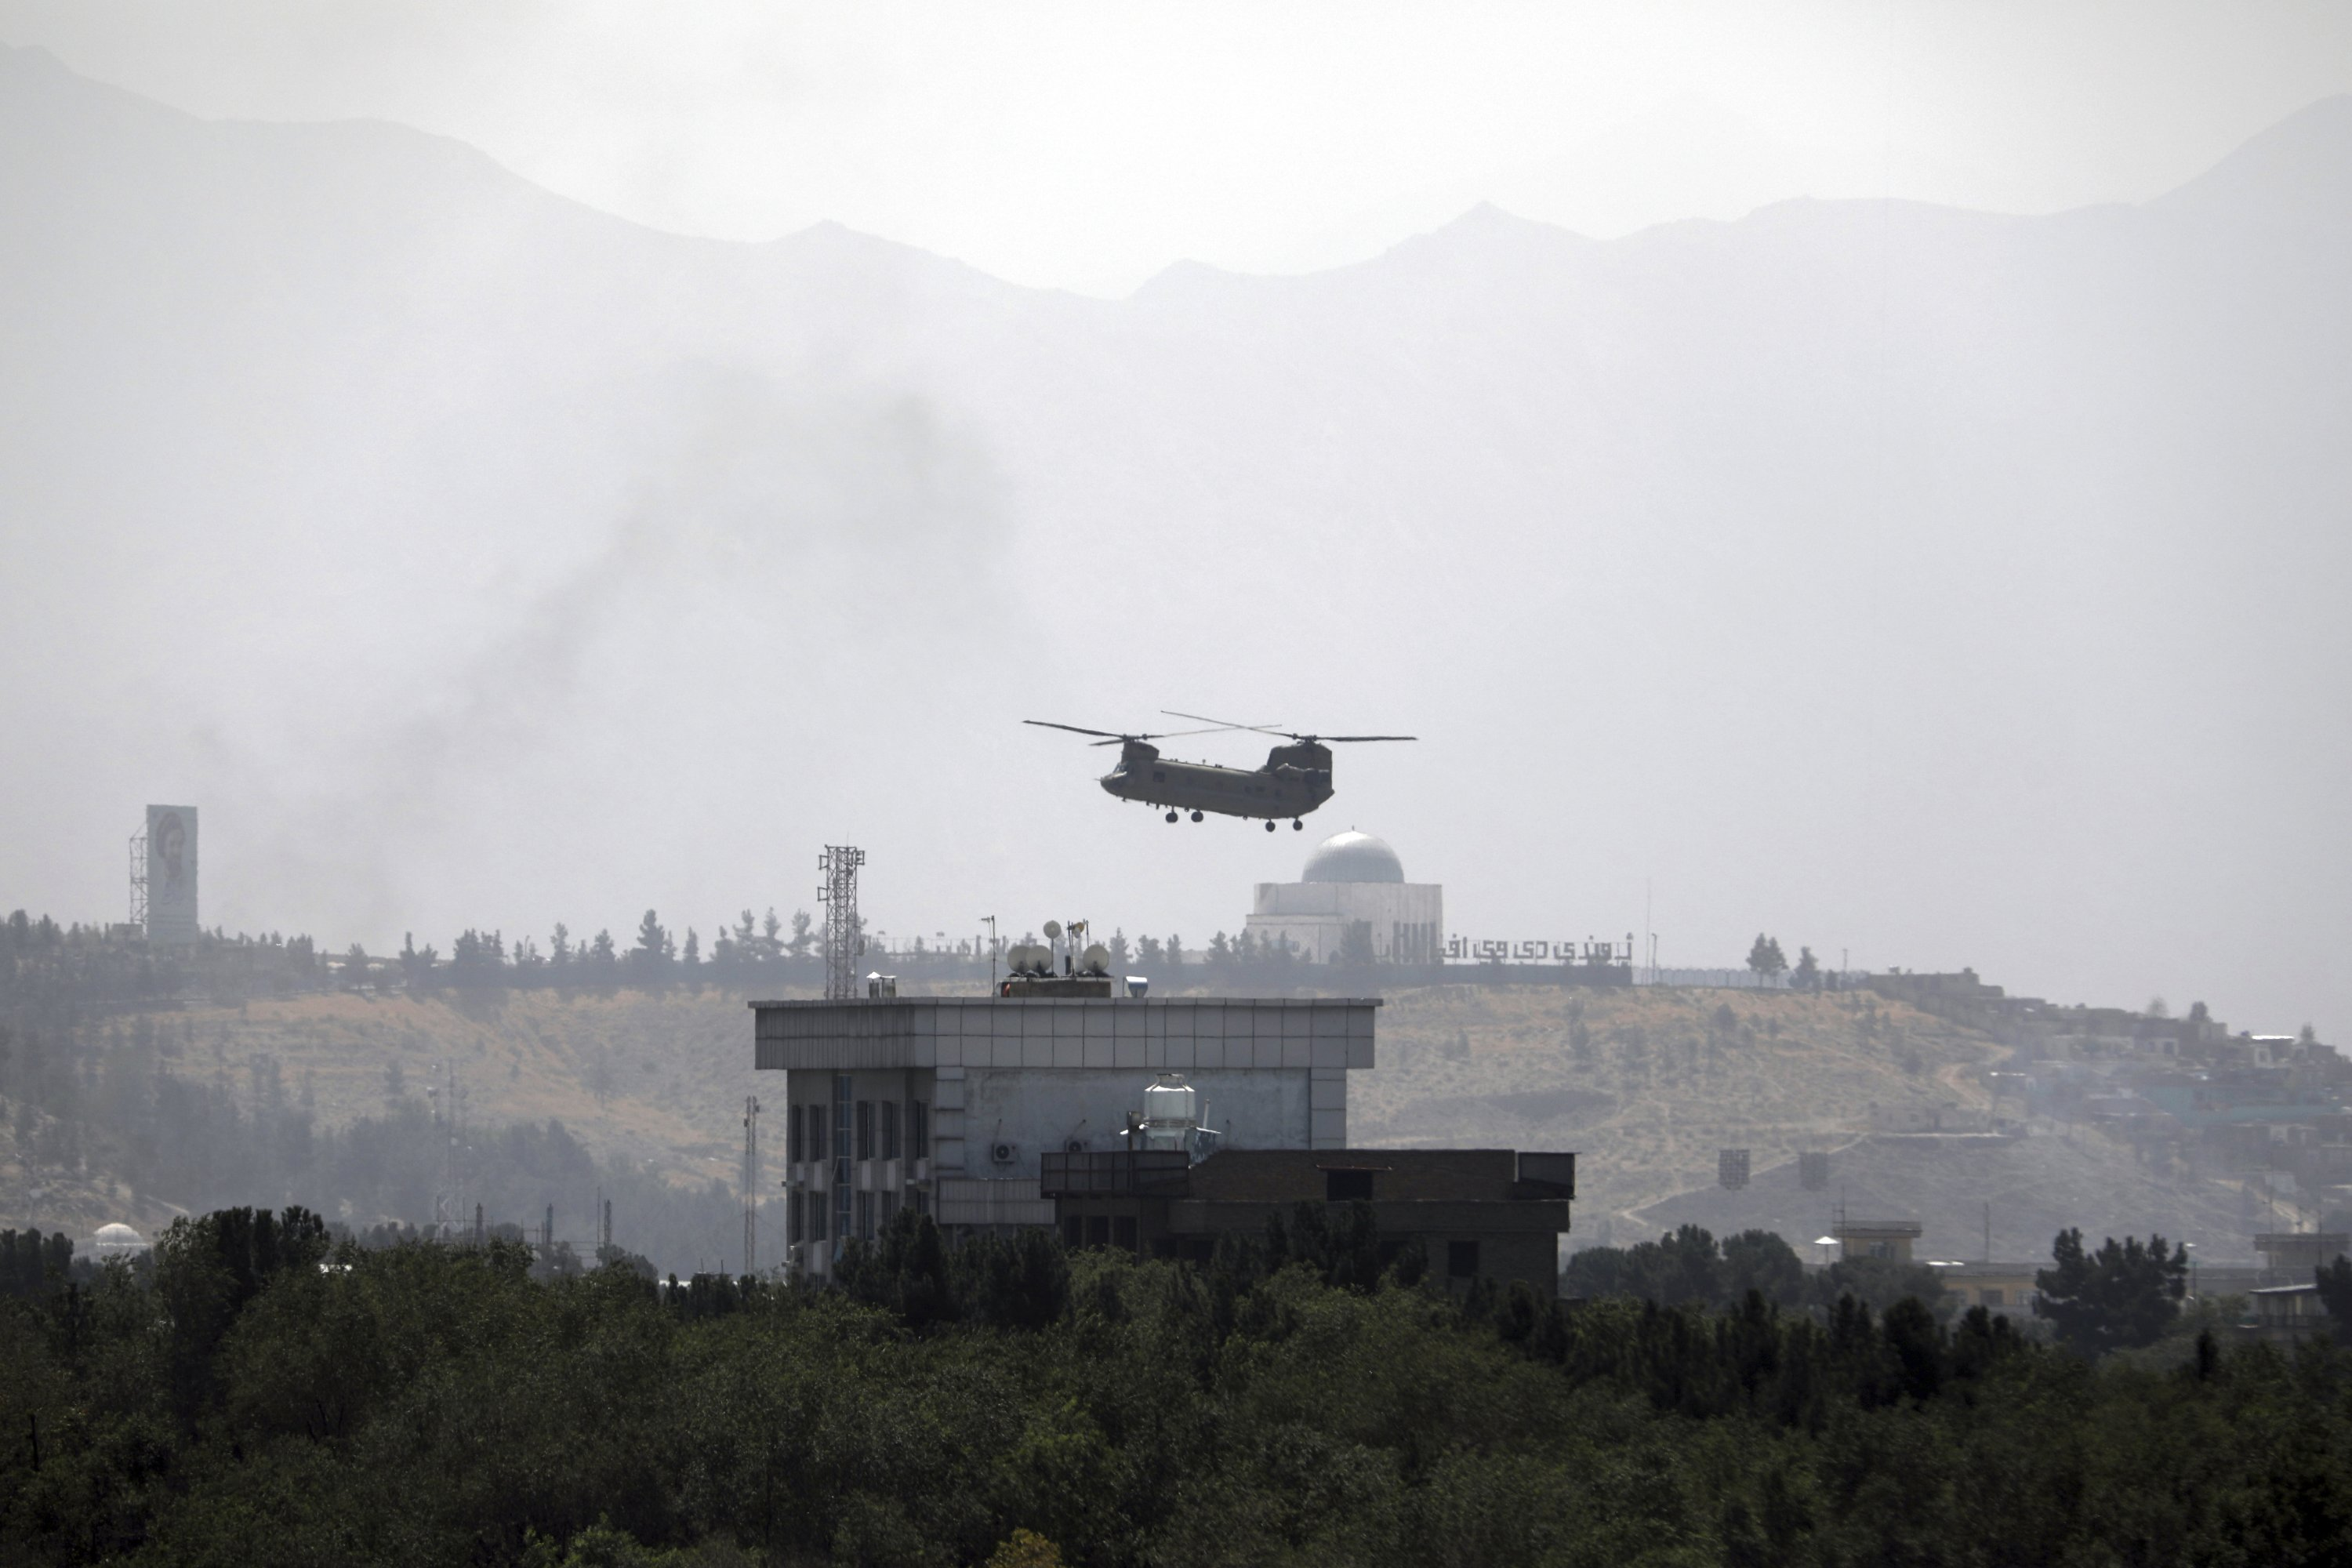 A U.S. Chinook helicopter flies over the U.S. Embassy in Kabul, Afghanistan, Aug. 15, 2021. Helicopters are landing at the U.S. Embassy in Kabul as diplomatic vehicles leave the compound amid the Taliban advanced on the Afghan capital. (AP Photo)